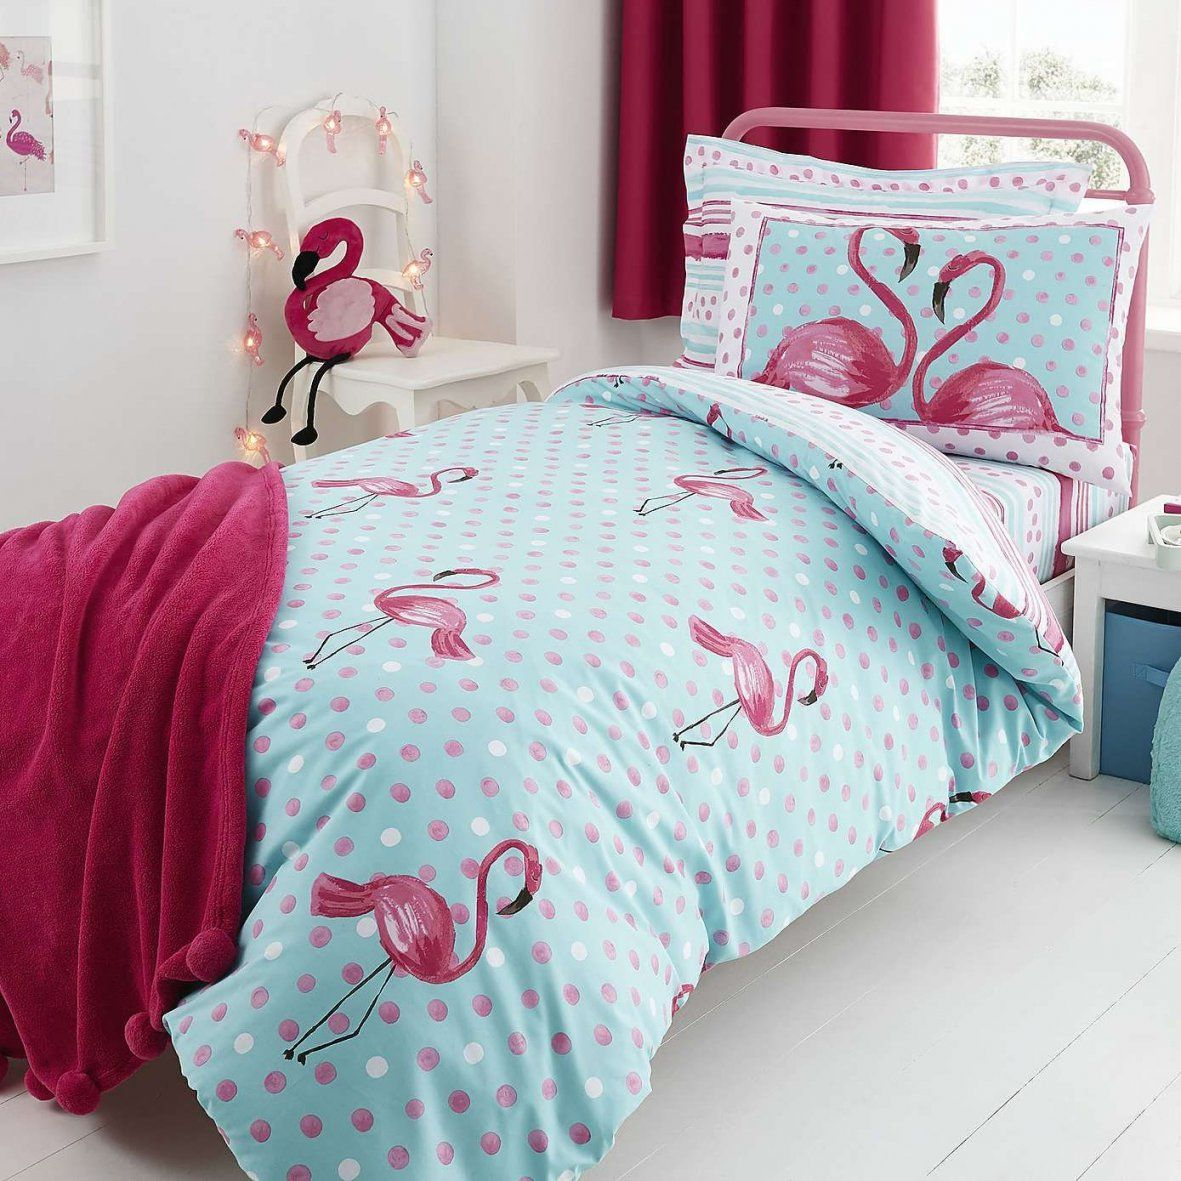 Flamingo Bed Linen Collection  Dunelm  Bed Linen Beautiful  Pinterest von Bettwäsche Shabby Chic Bild